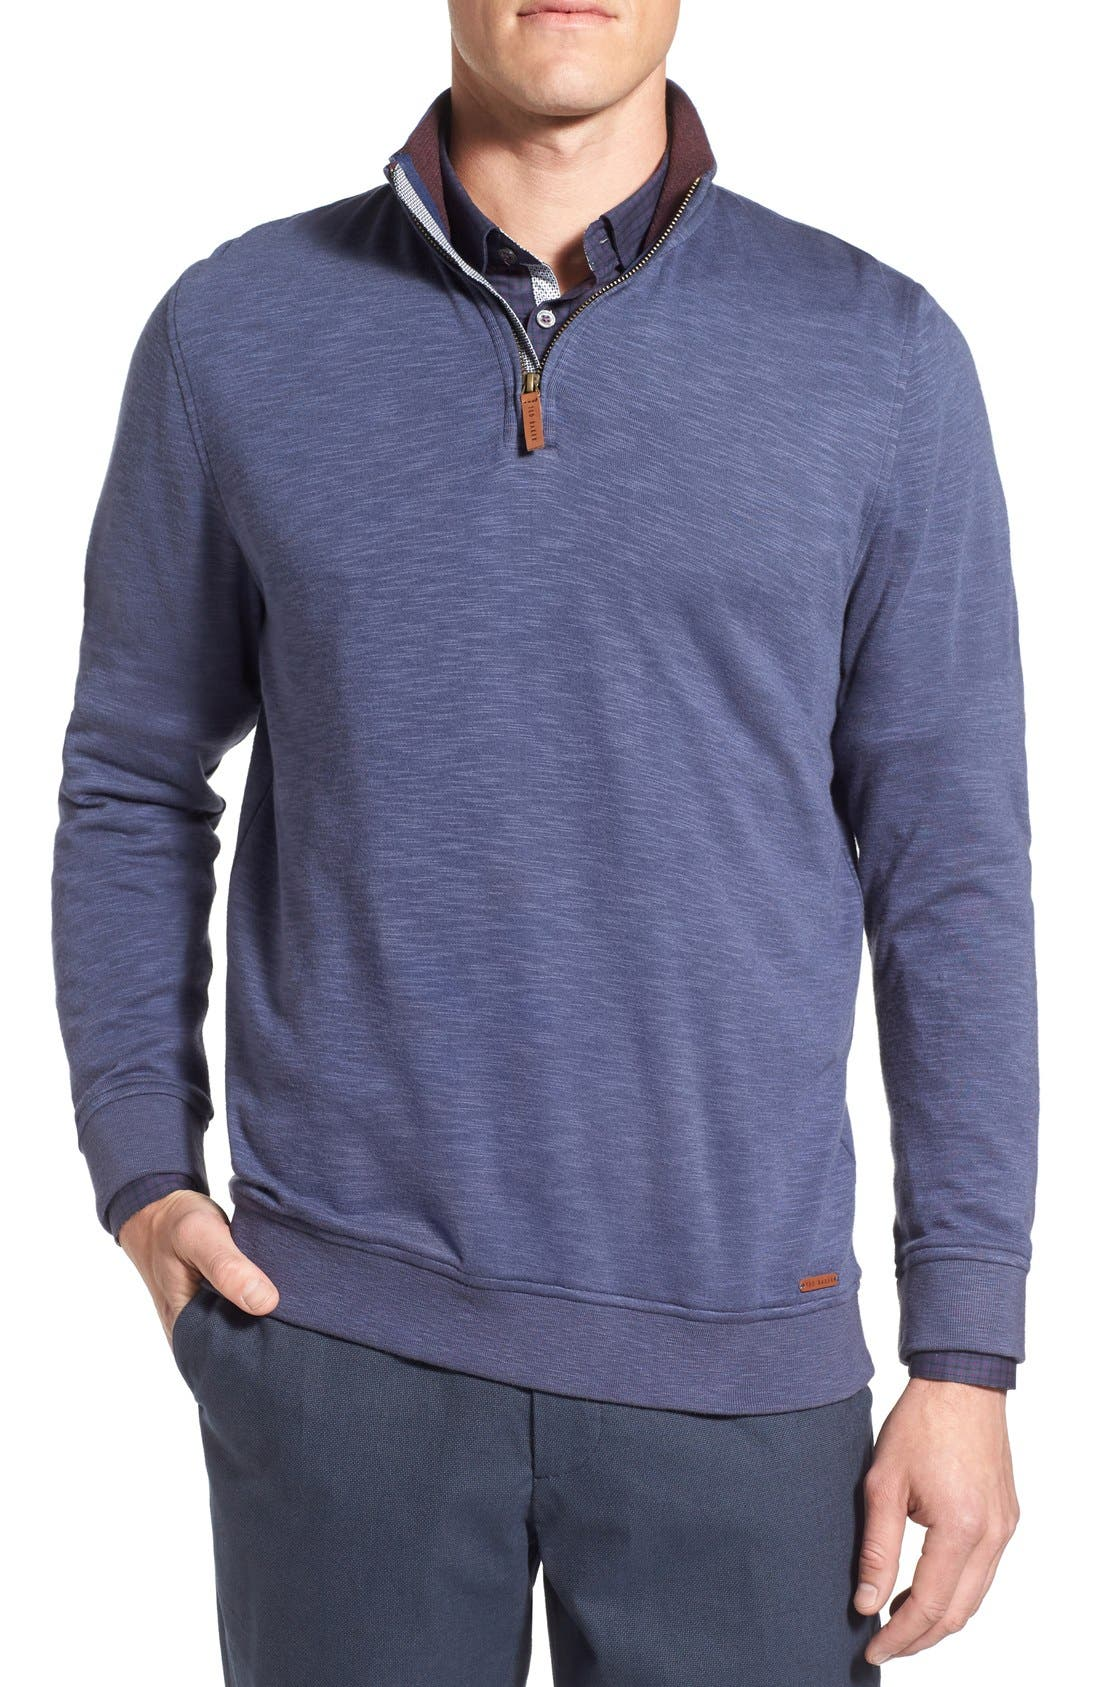 Alternate Image 1 Selected - Ted Baker London 'Mandra' Quarter Zip Pullover